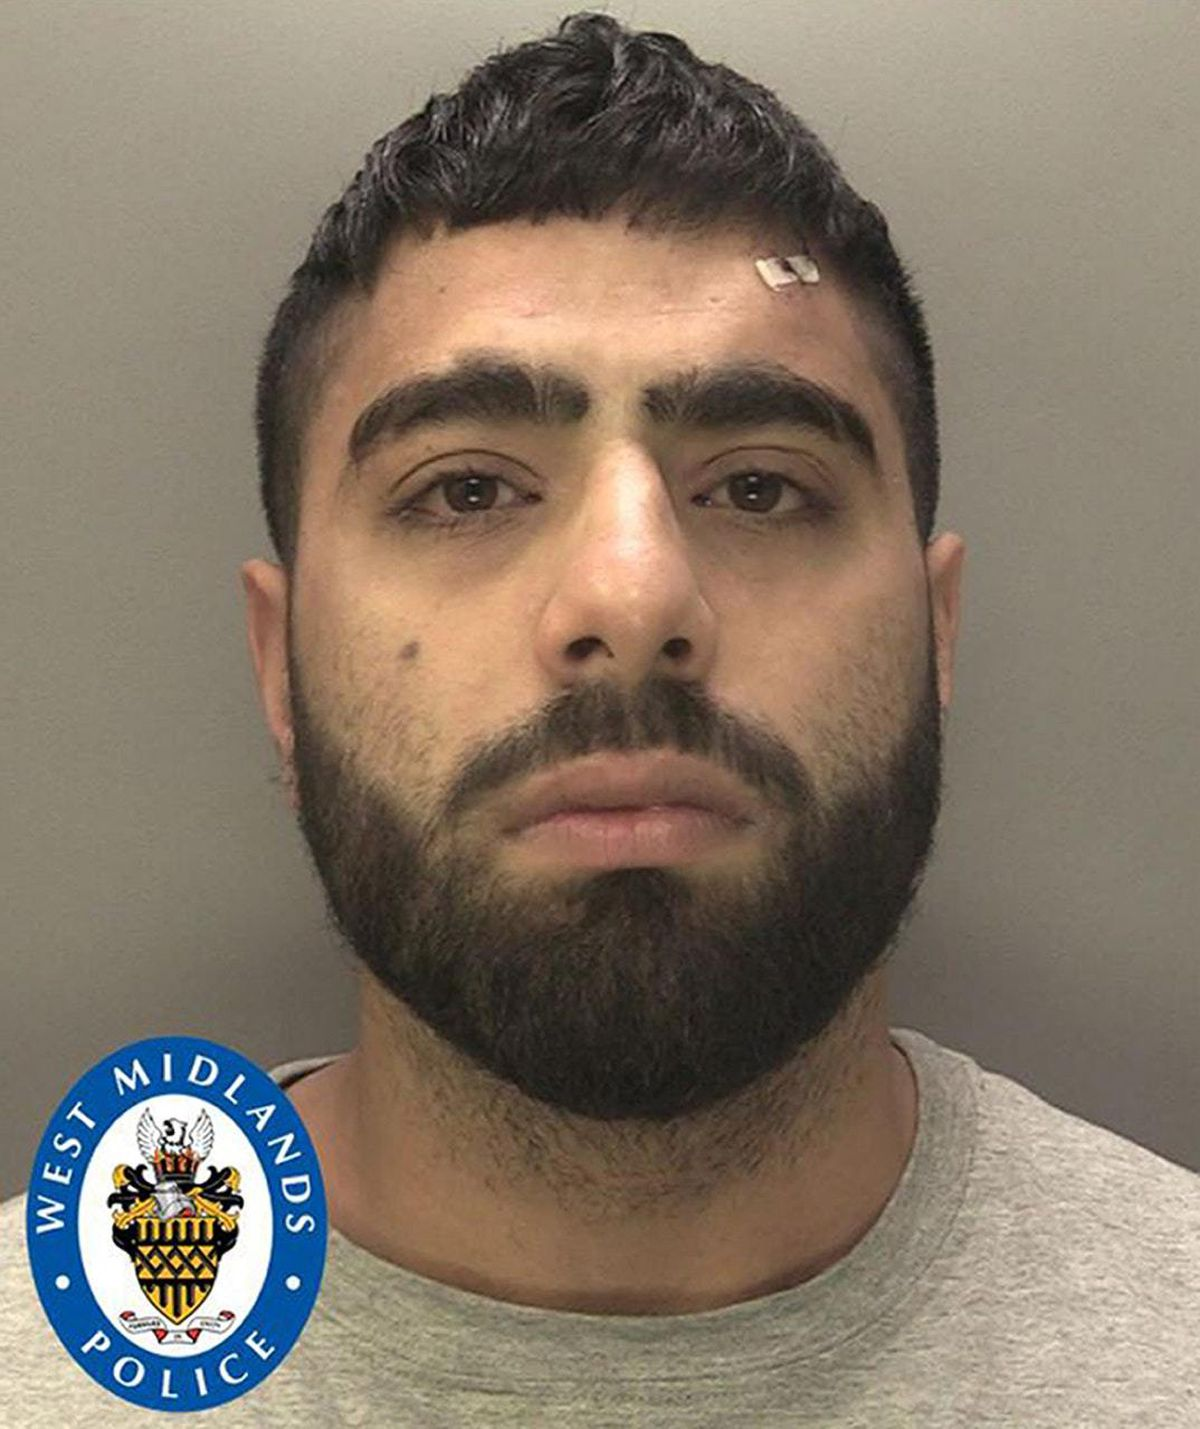 Ahsan Ghafoor admitted two counts of car theft